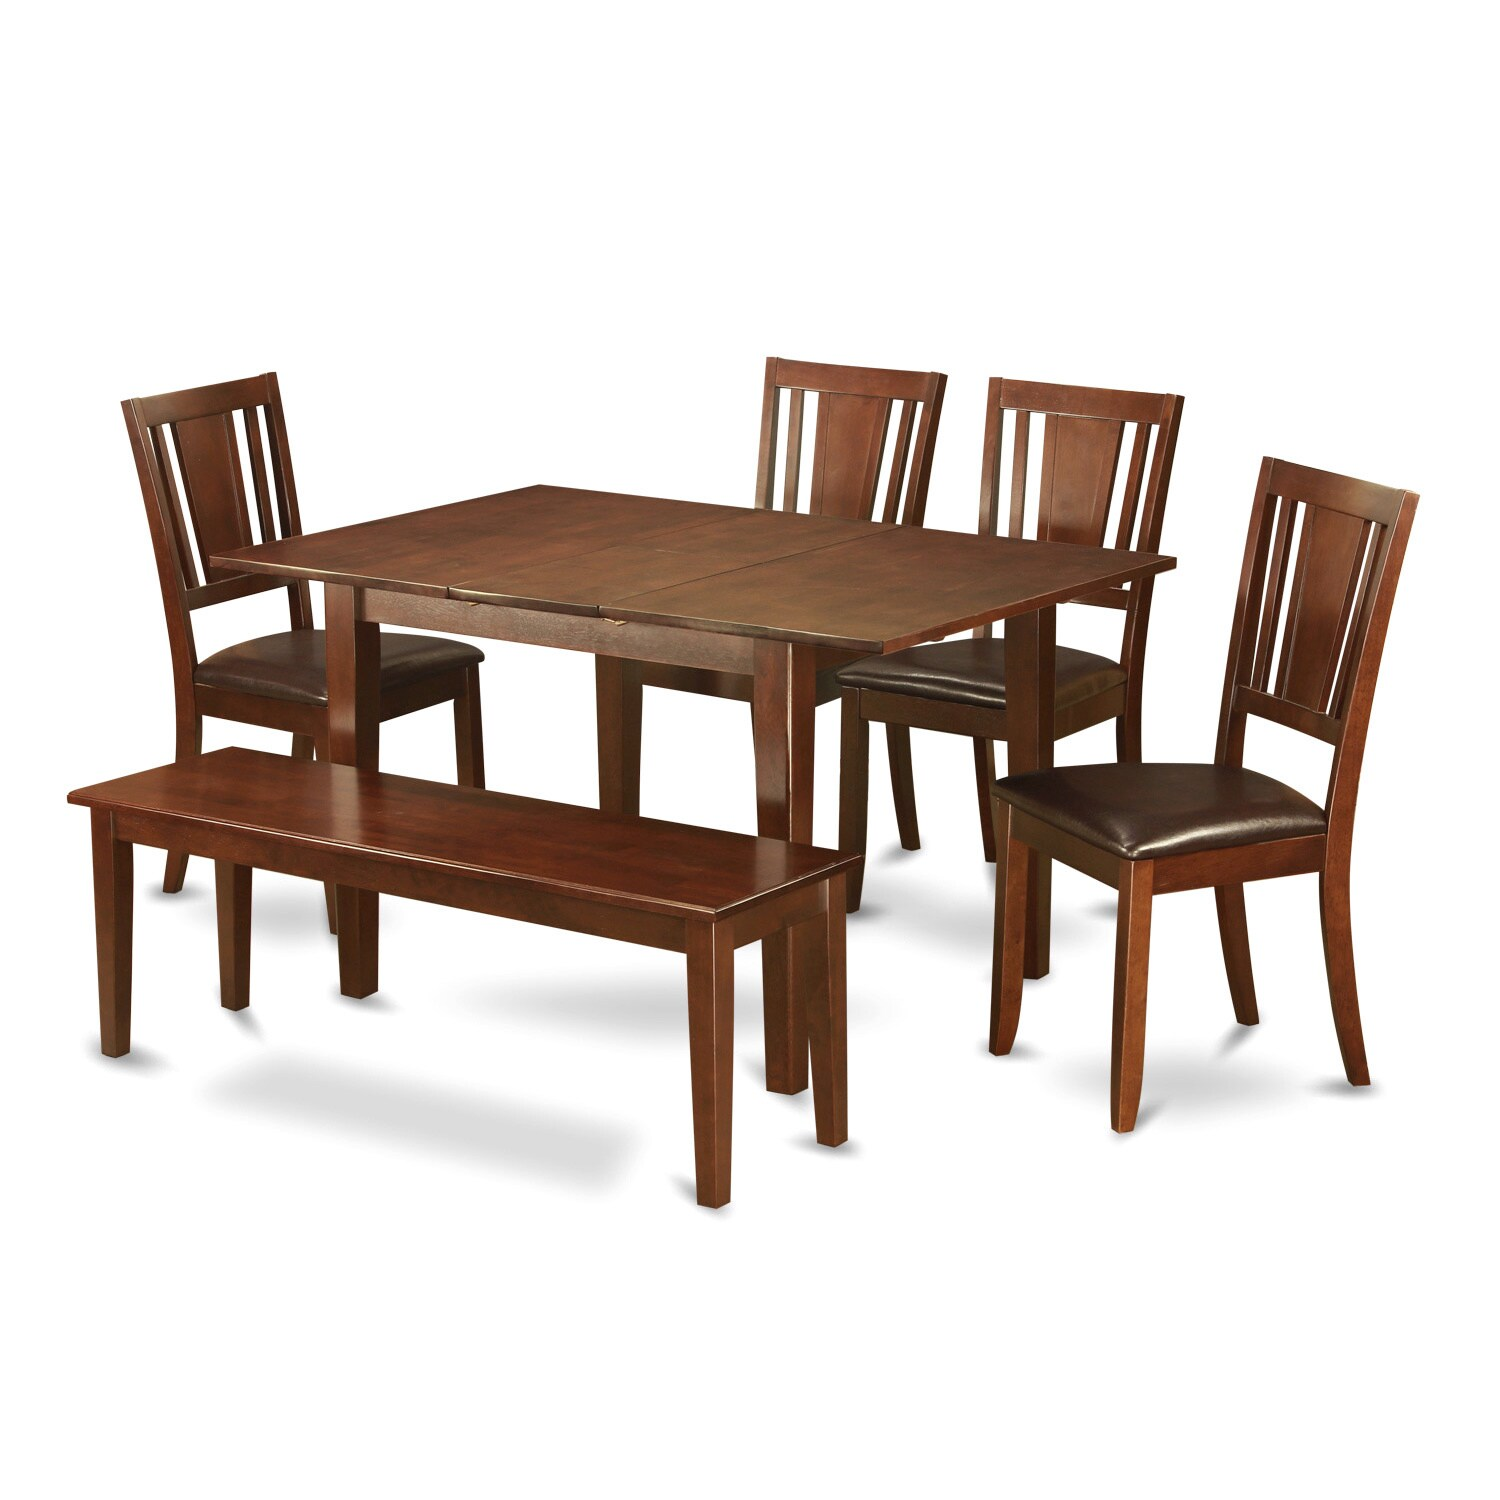 Shop brown rubberwood 6 piece dining table set with dining bench free shipping today overstock com 12003684